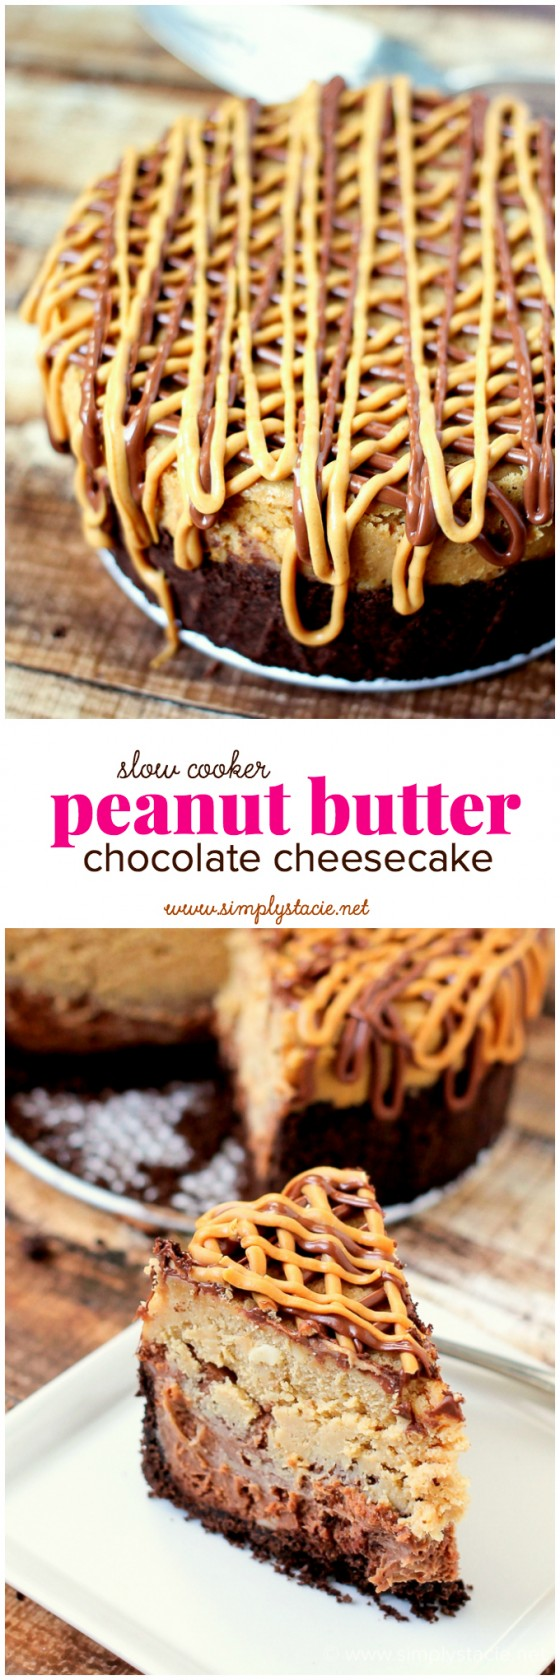 Slow Cooker Peanut Butter & Chocolate Cheesecake